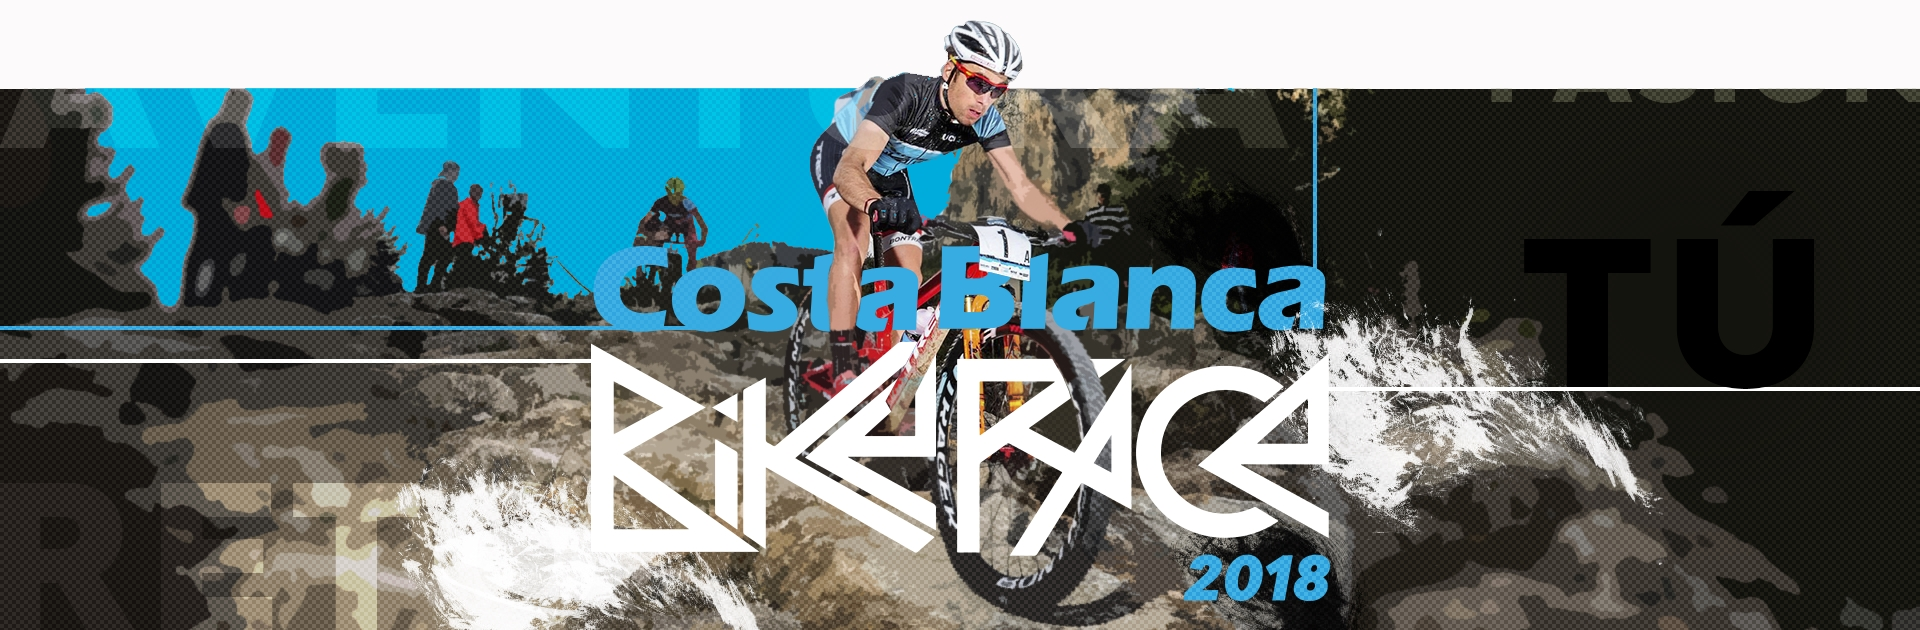 Costablanca Bike Race CBBR 2018